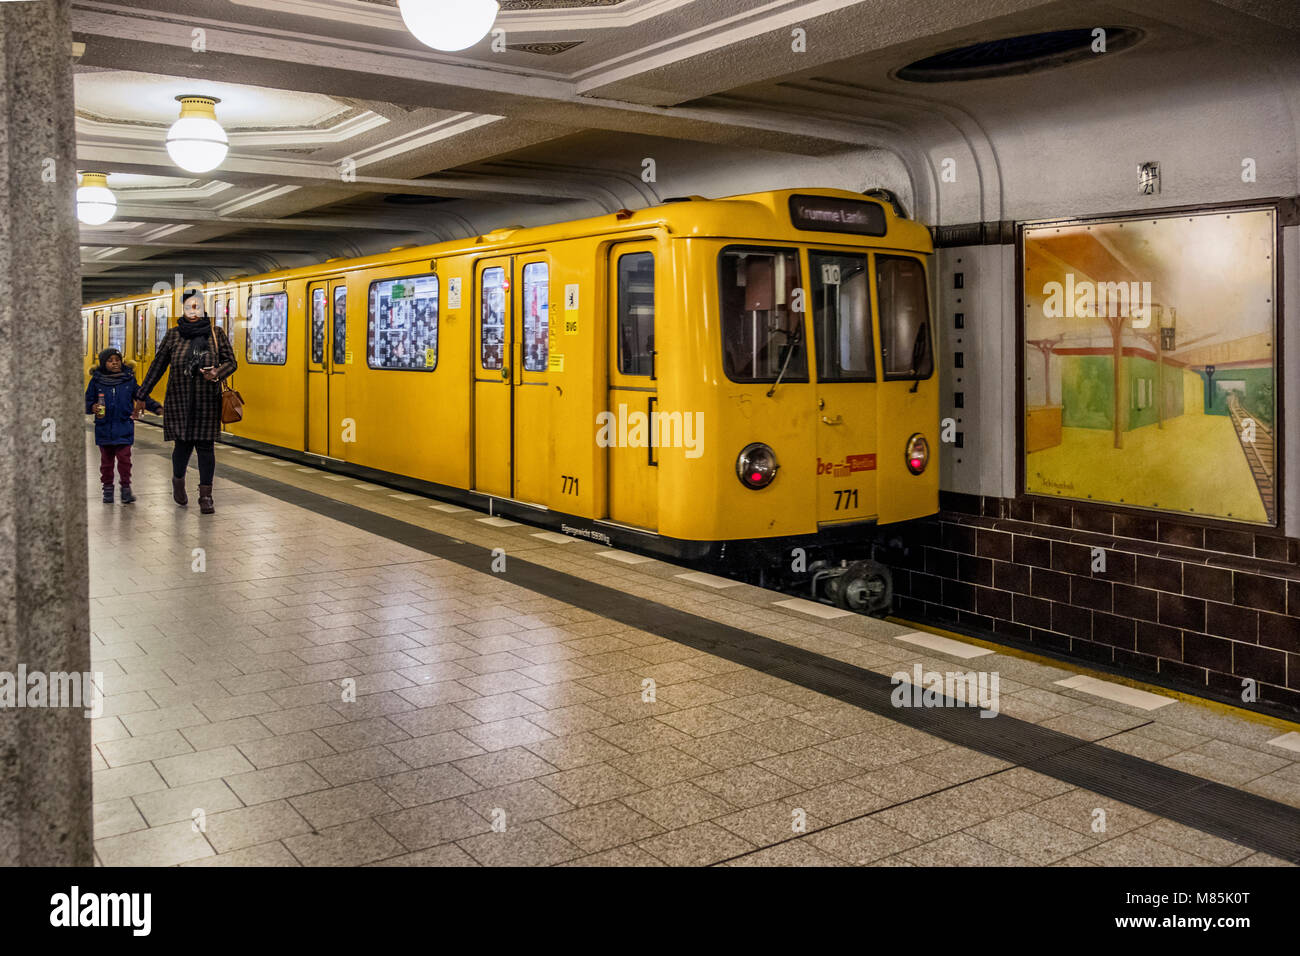 Berlin Dahlem District,Breitenbachplatz U-Bahn underground railway station interior, yellow train and woman with - Stock Image